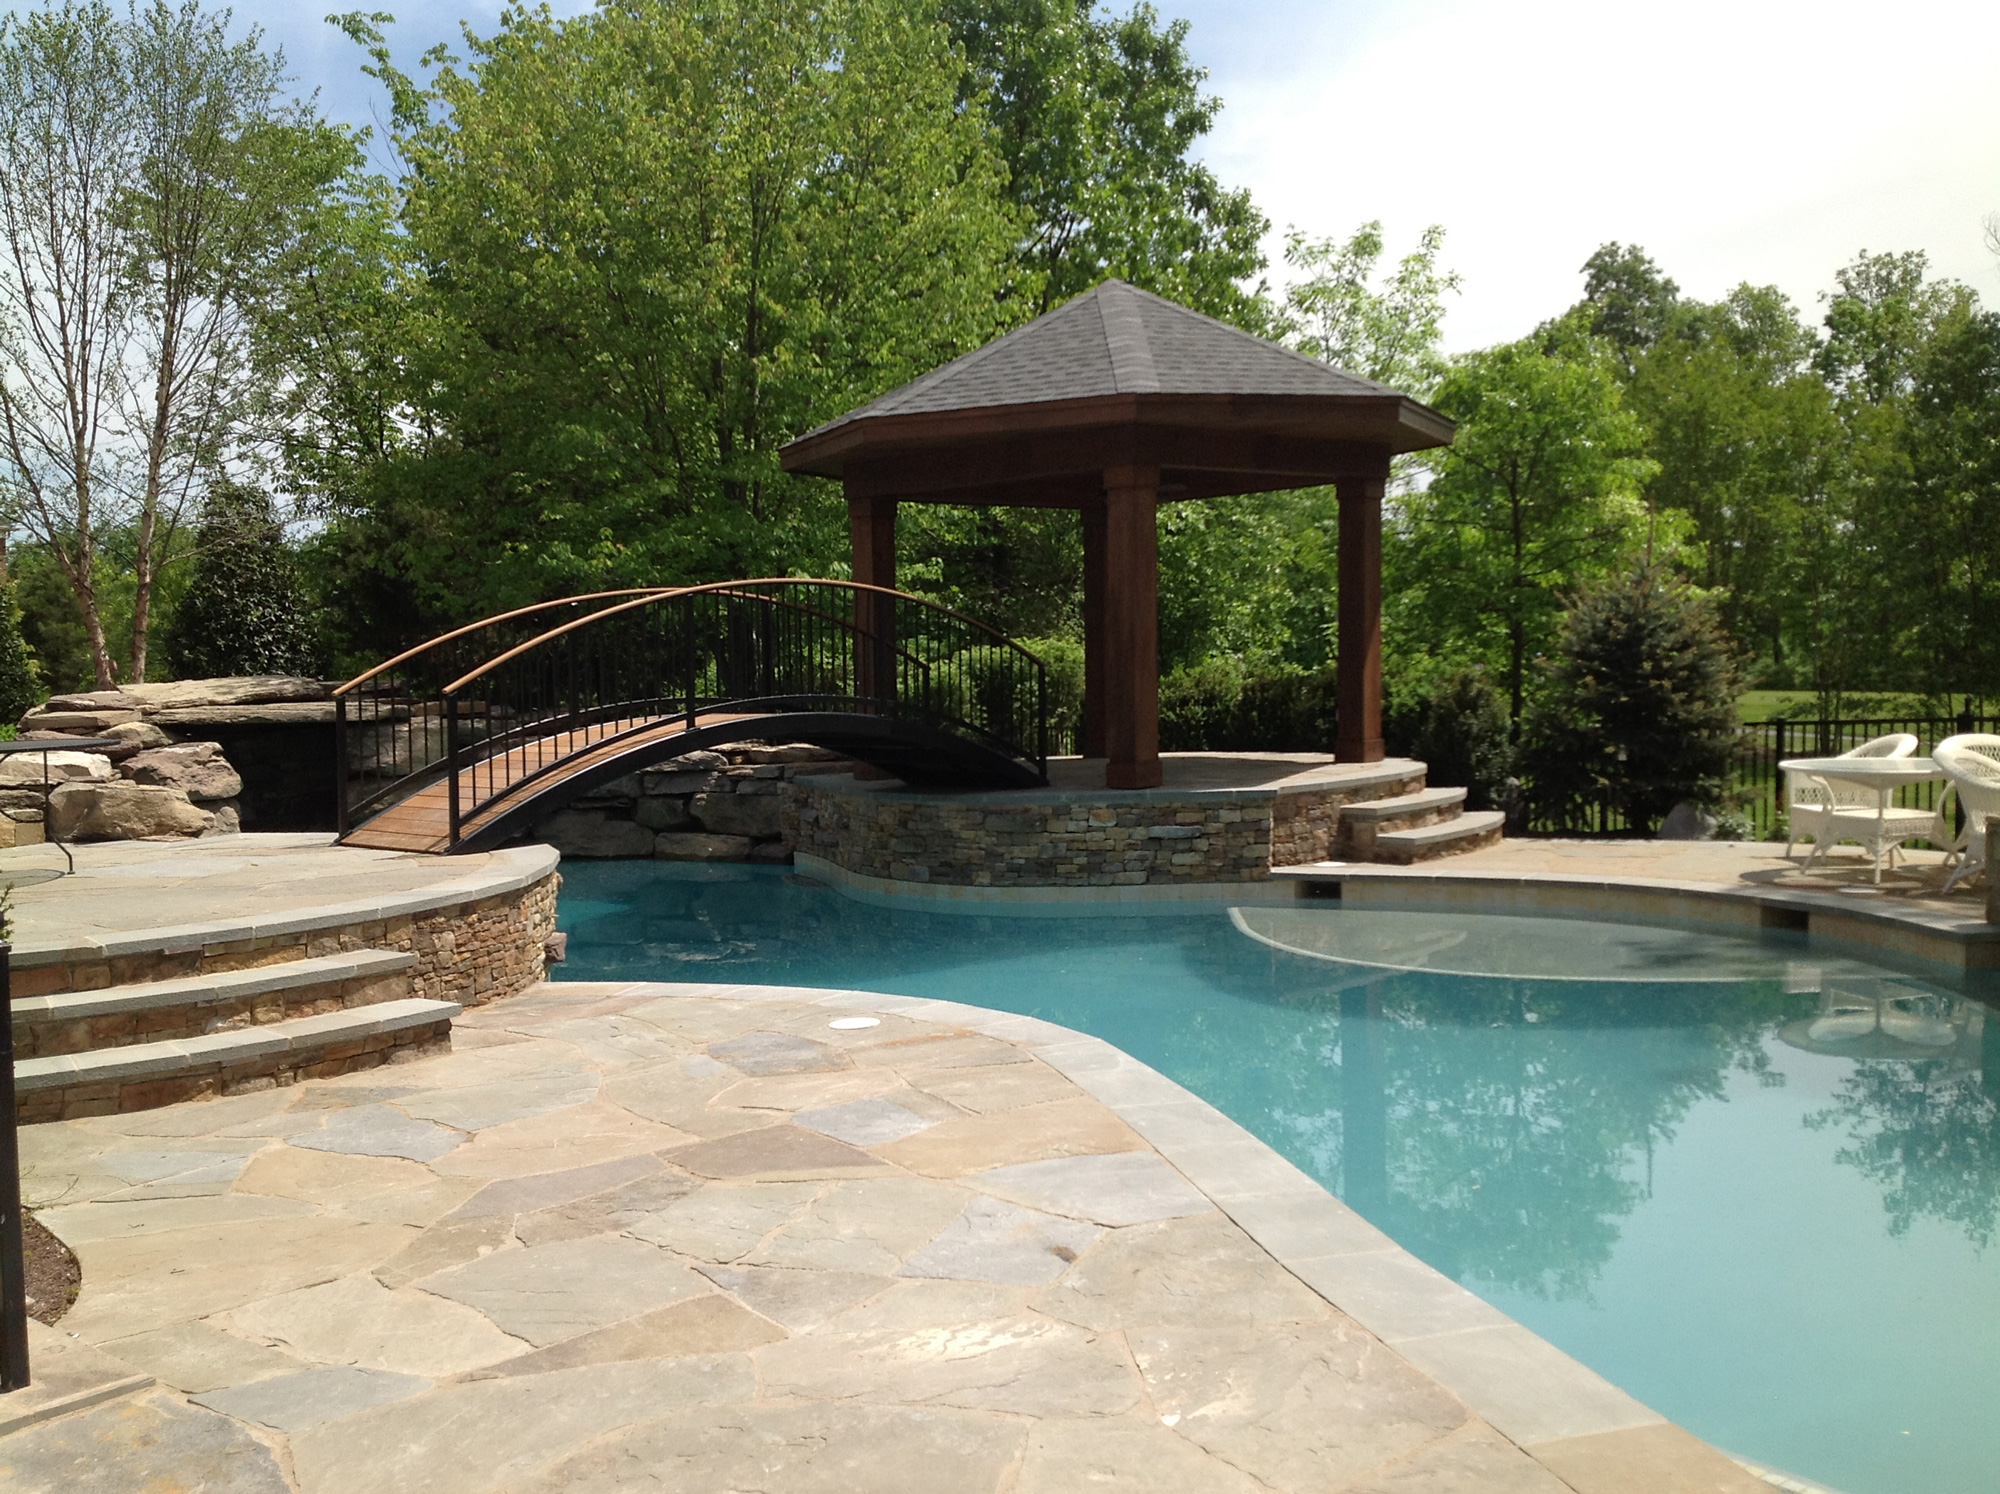 Gazebo Bridge And Lagoon Style Pool In Ashburn, VA